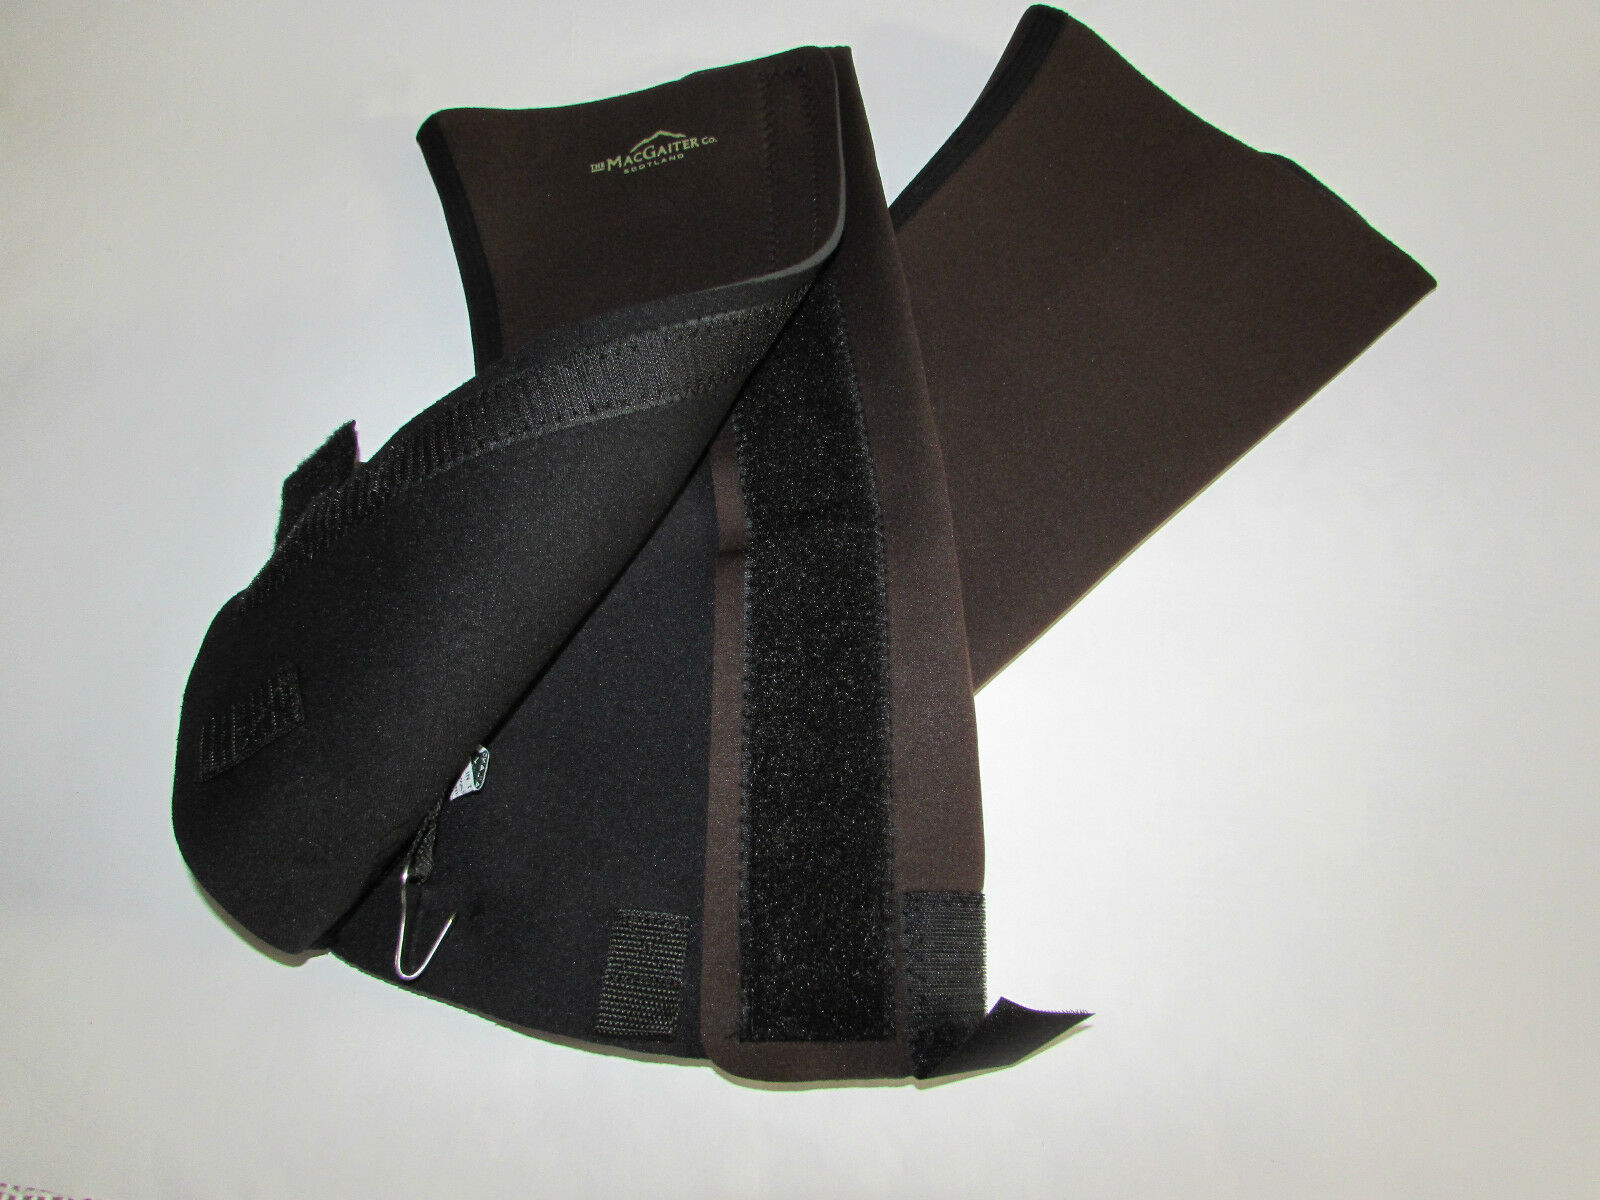 MACGAITER NEOPRENE GAITERS HUNTING  - RIDING - SHOOTING - CHOICE OF COLOURS